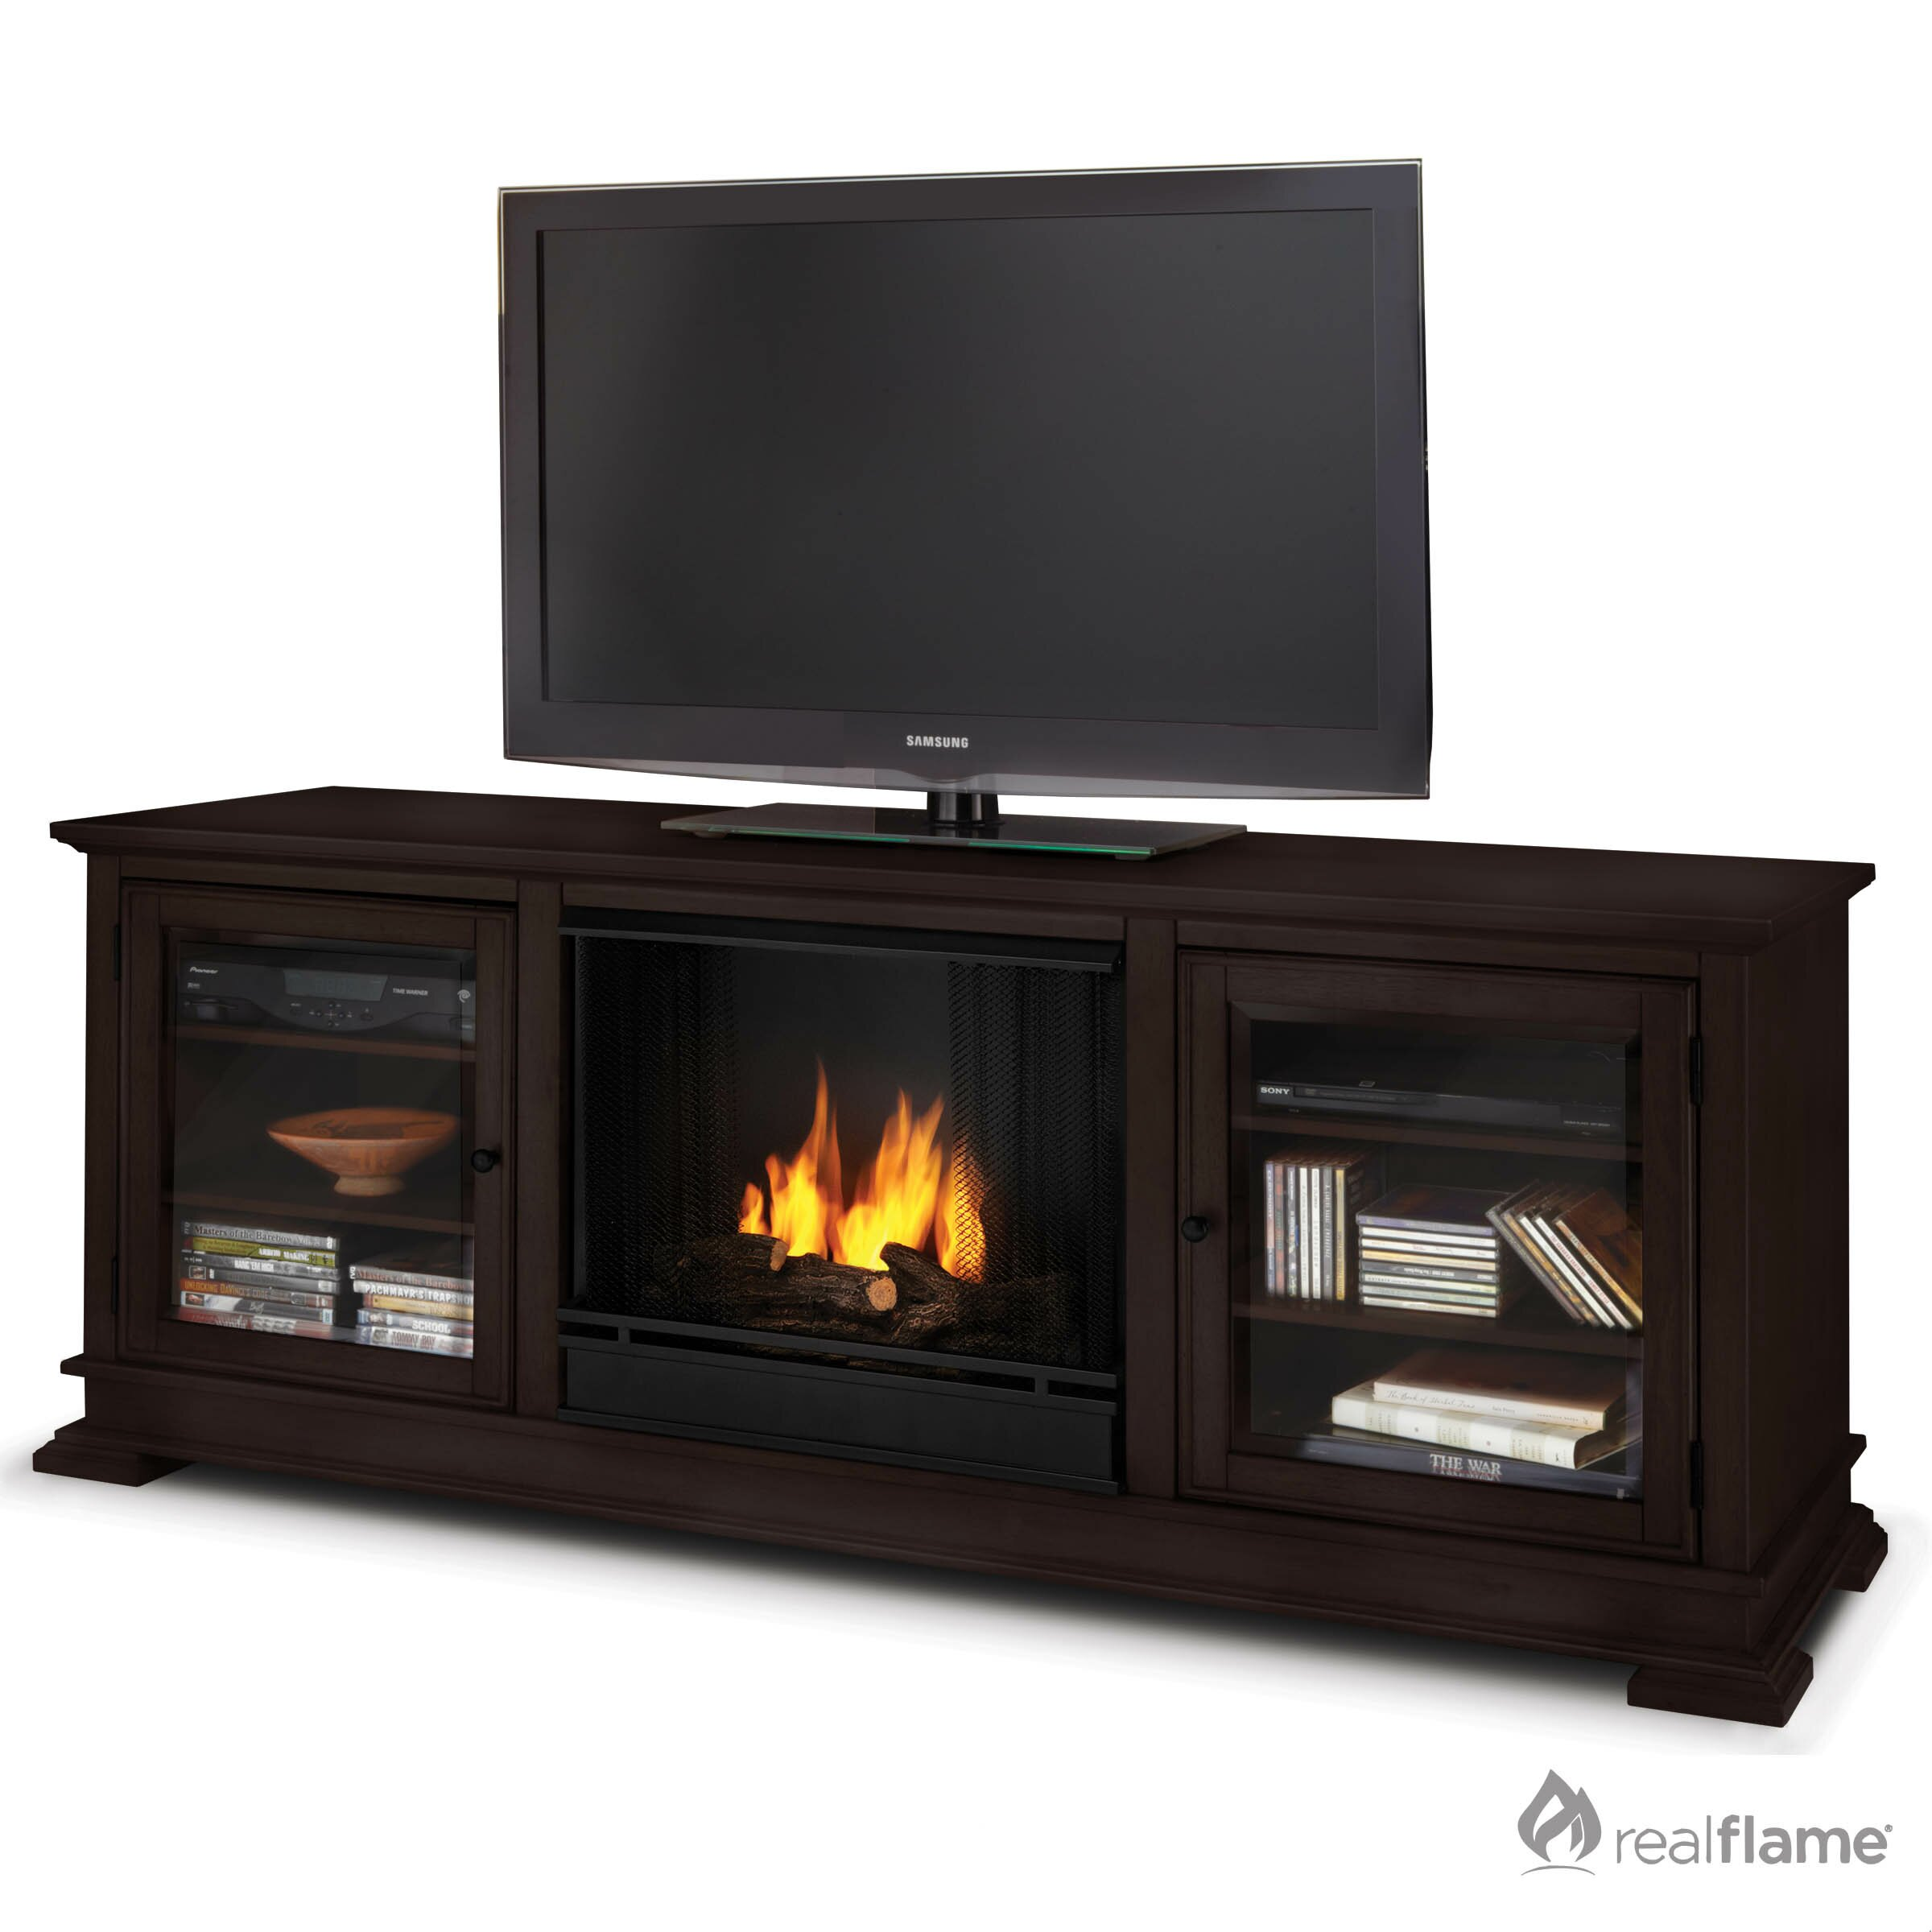 Real Flame Hudson Ventless Tv Stand With Electric Fireplace Reviews Wayfair